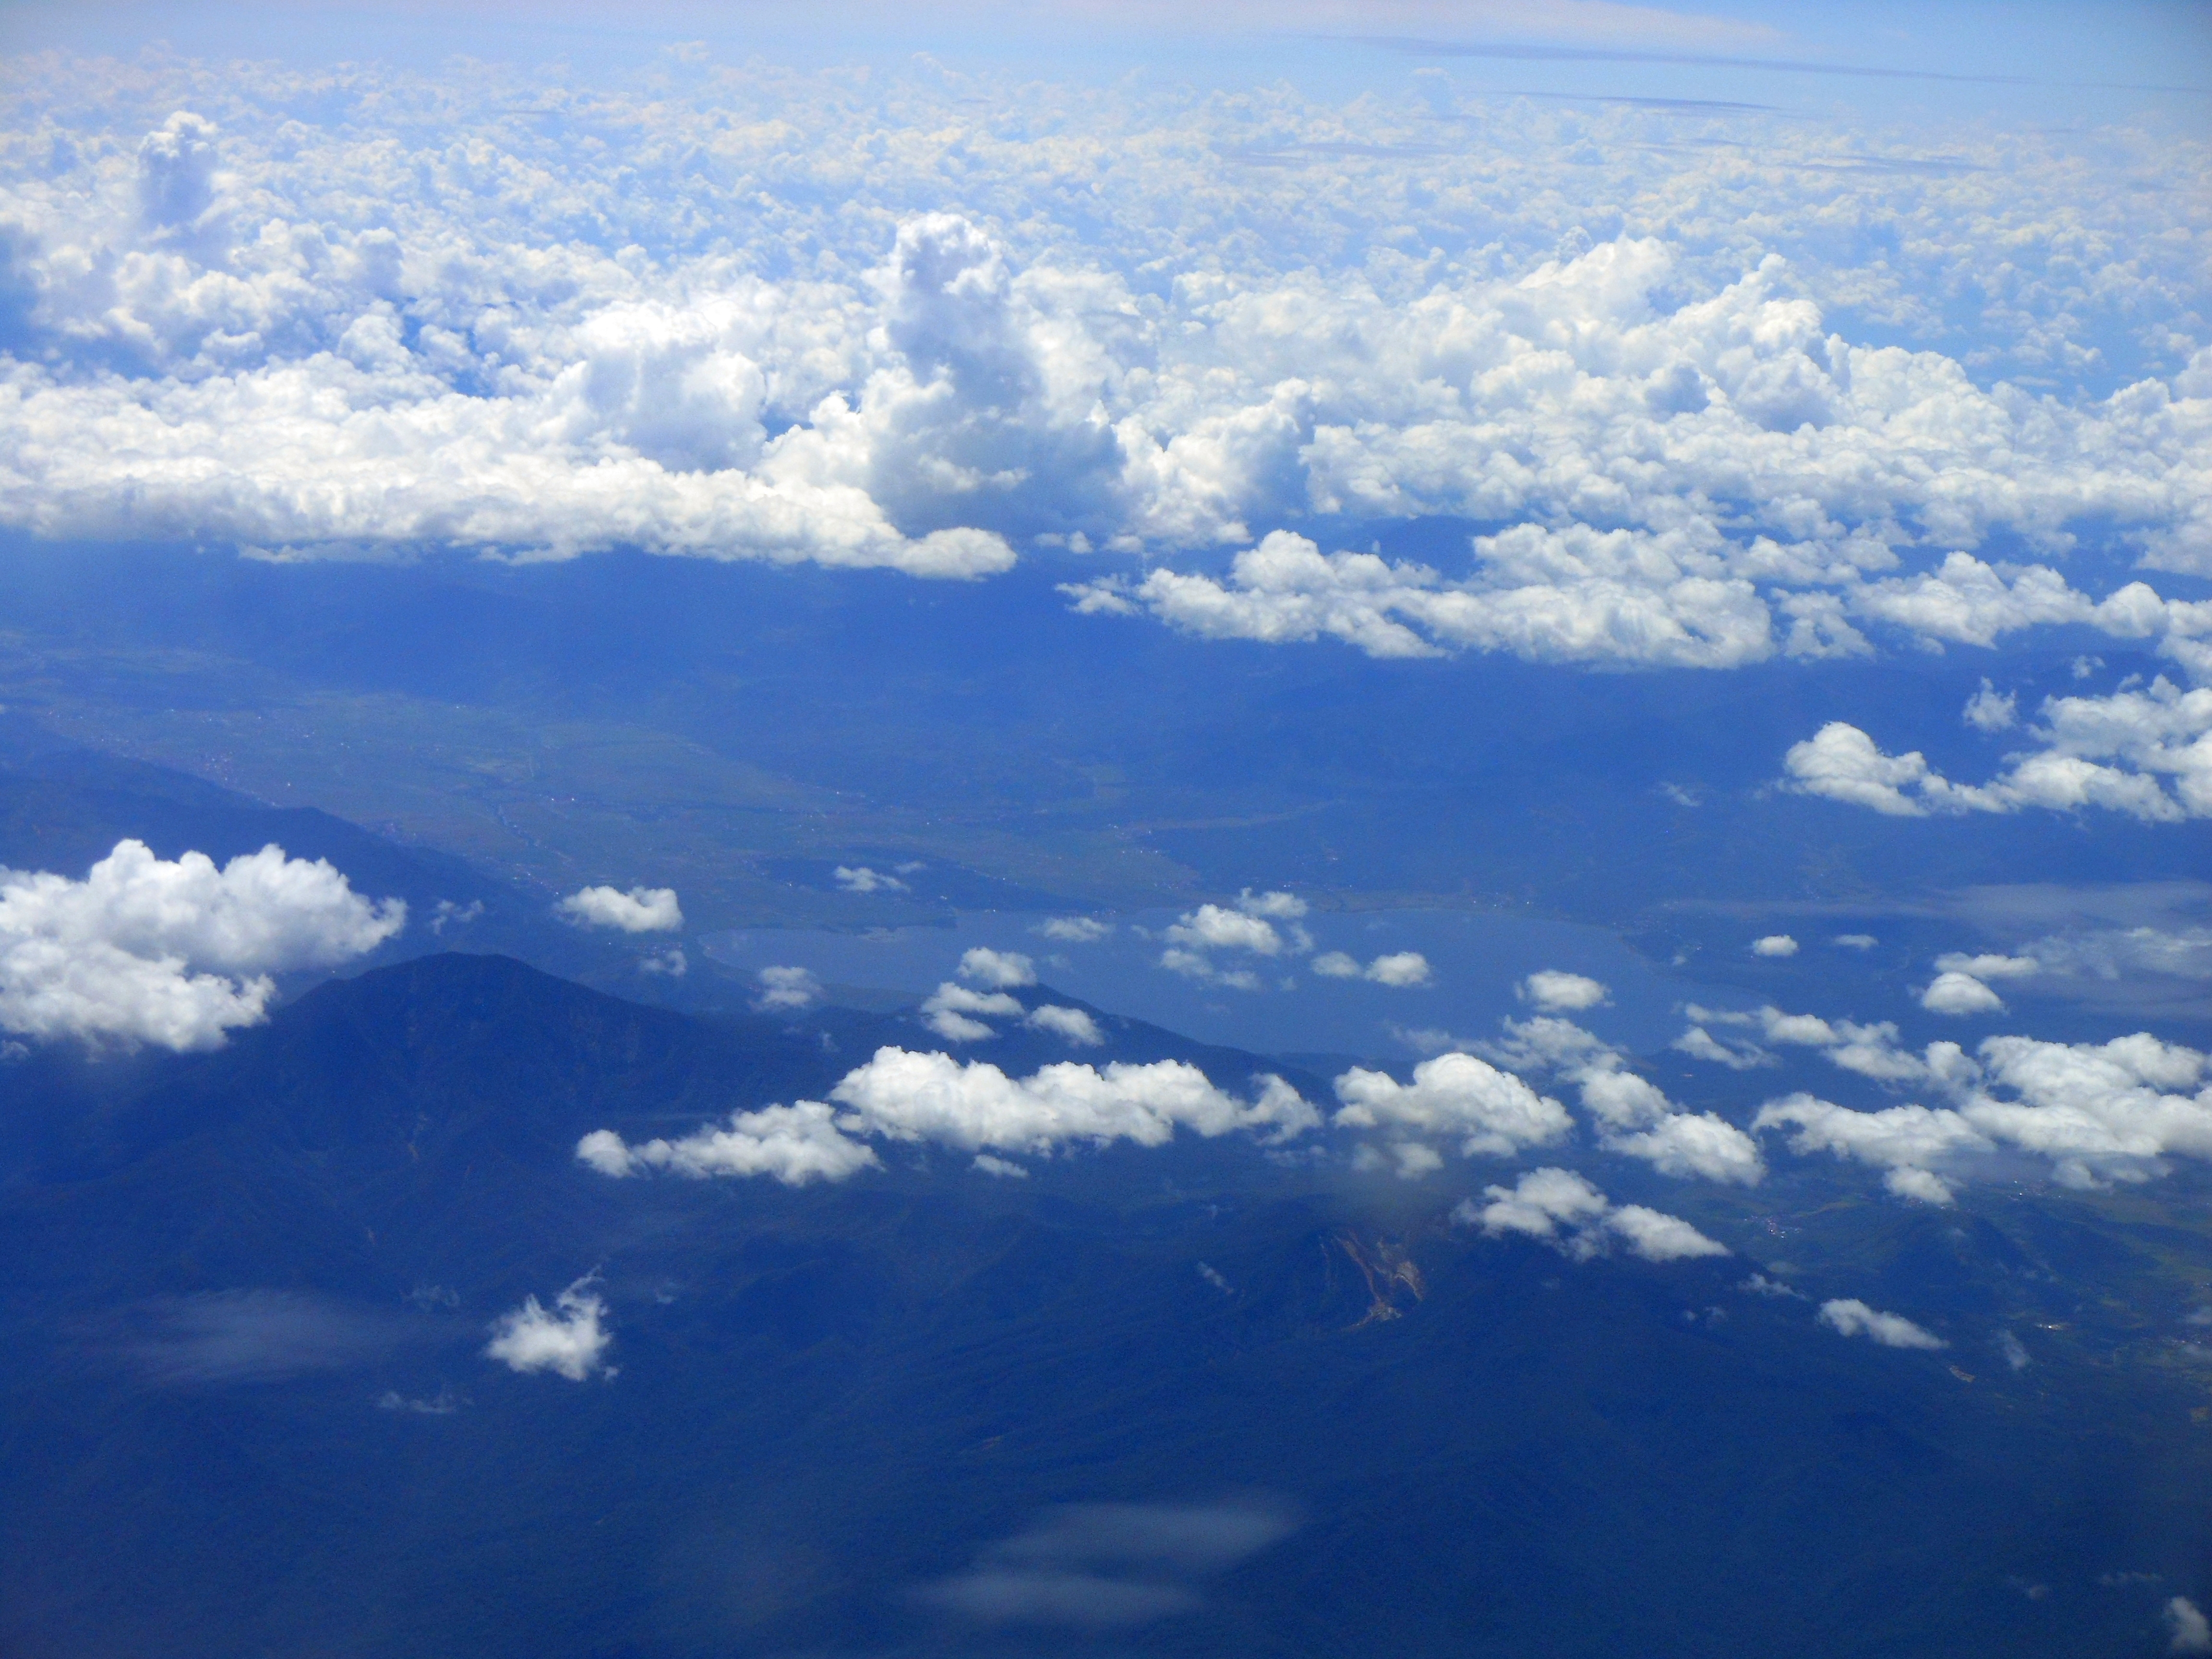 raya and lake kerinci from above